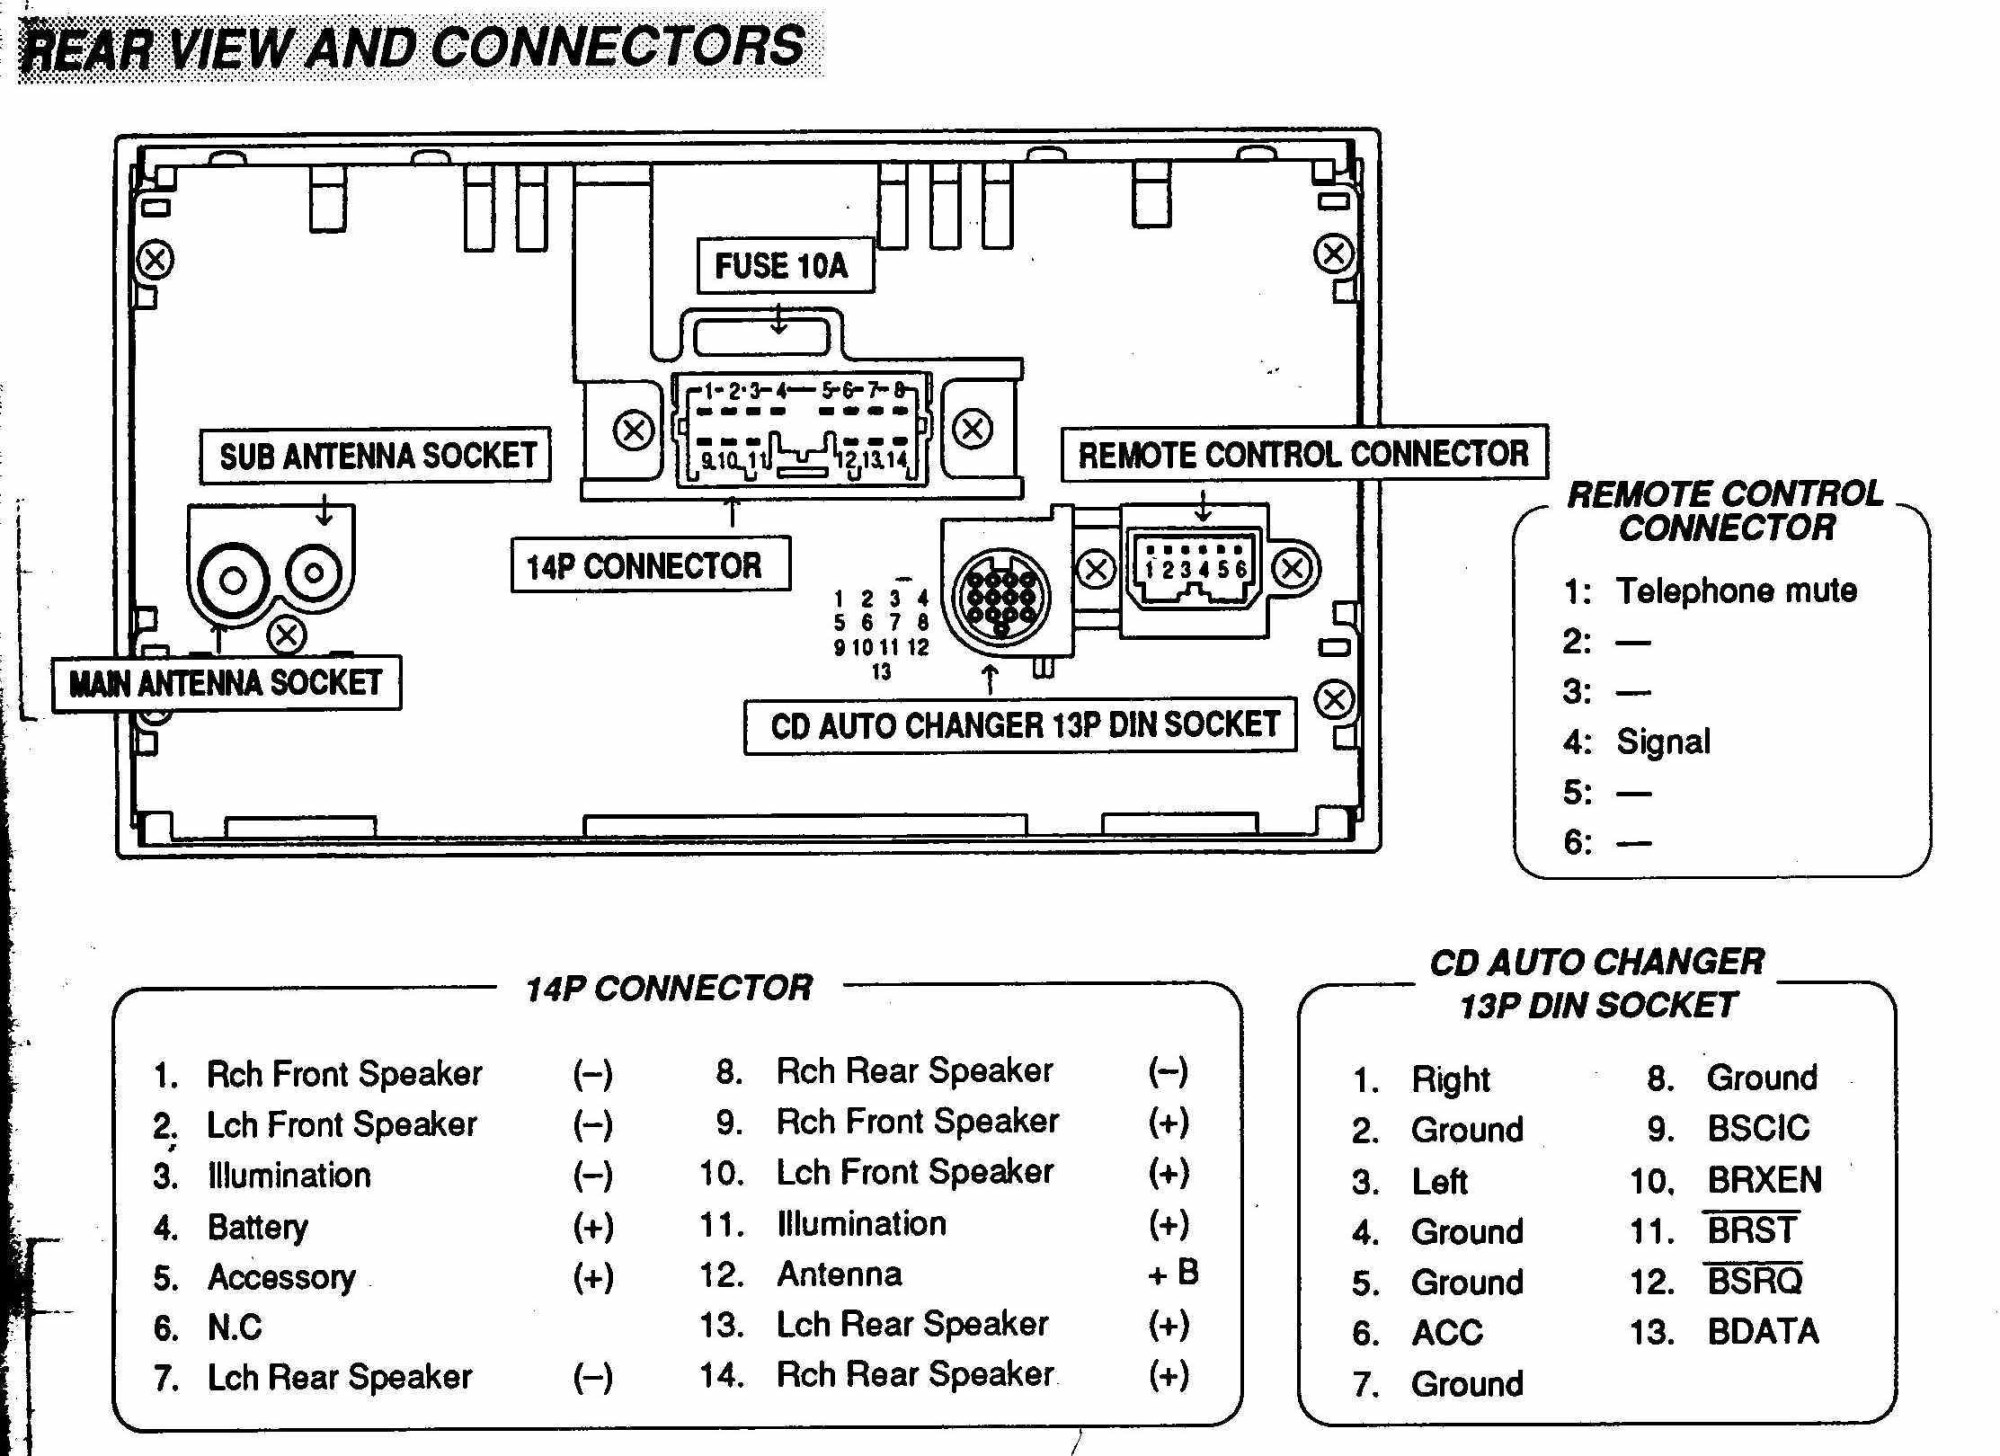 hight resolution of 2002 mitsubishi eclipse engine diagram wiring diagram moreover 2001 mitsubishi eclipse radio wiring diagram of 2002